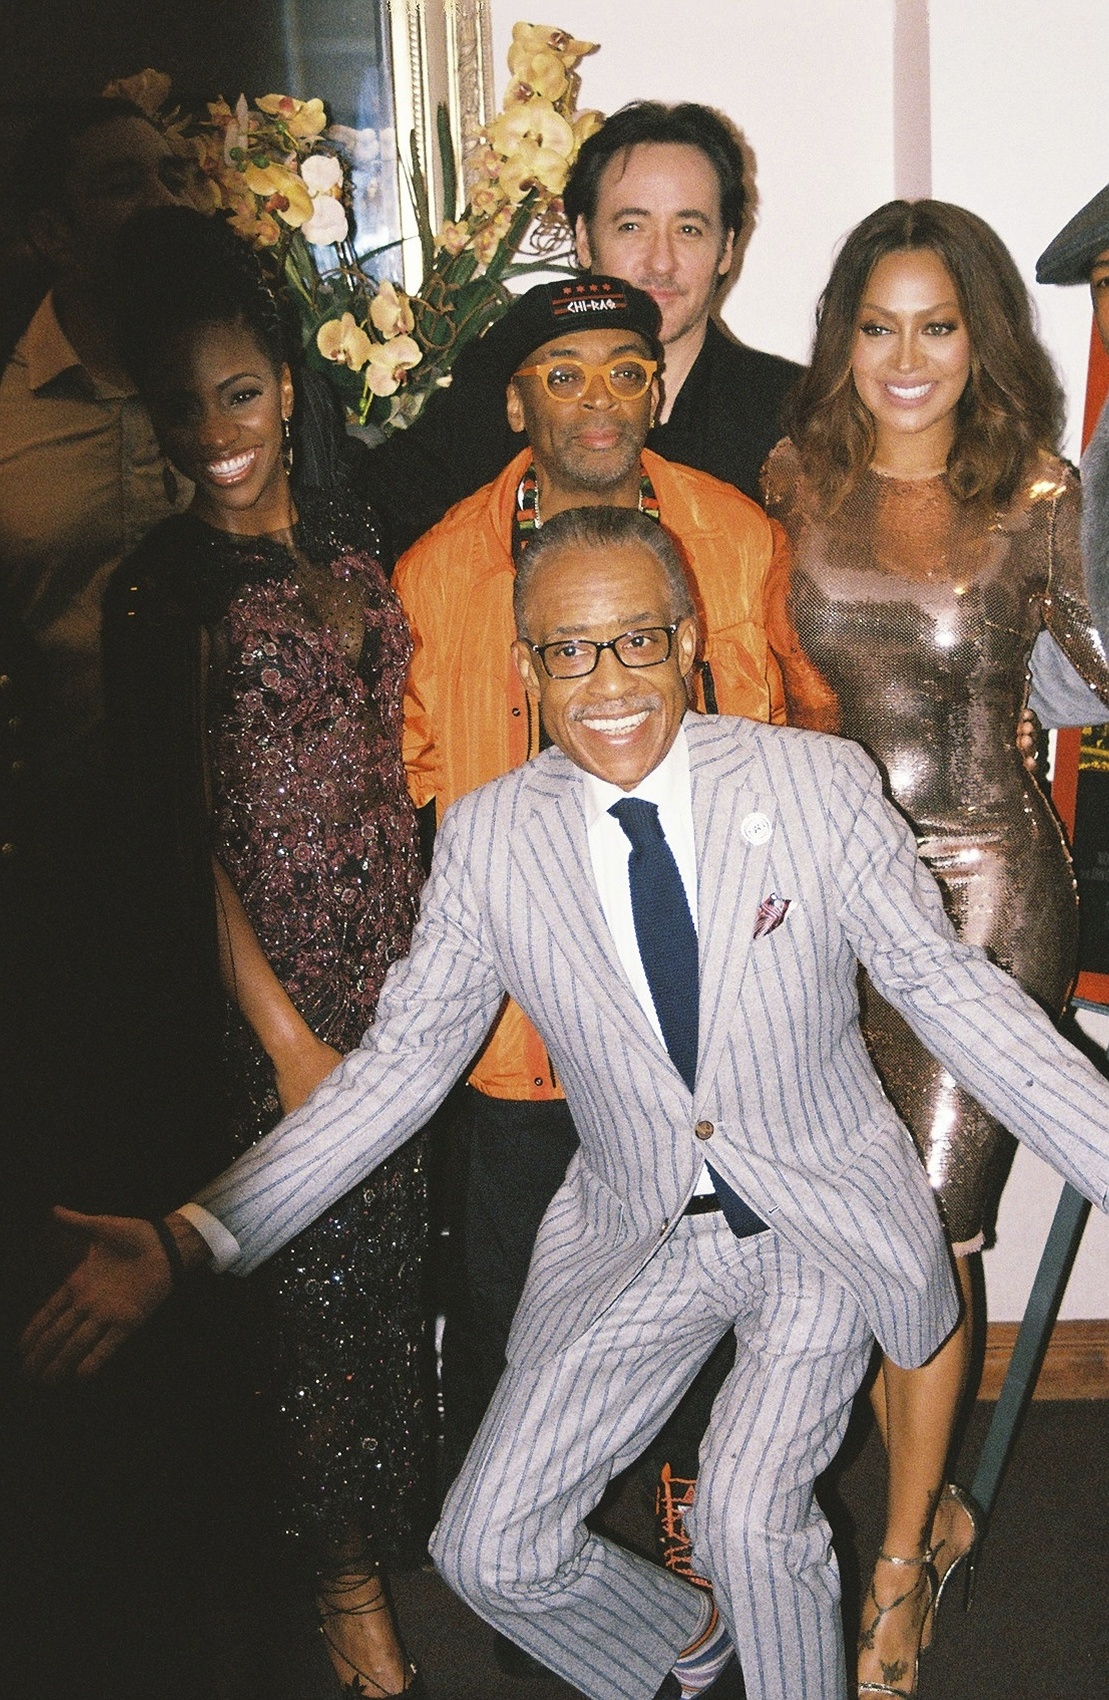 Cast members pose with the Reverend Al Sharpton.